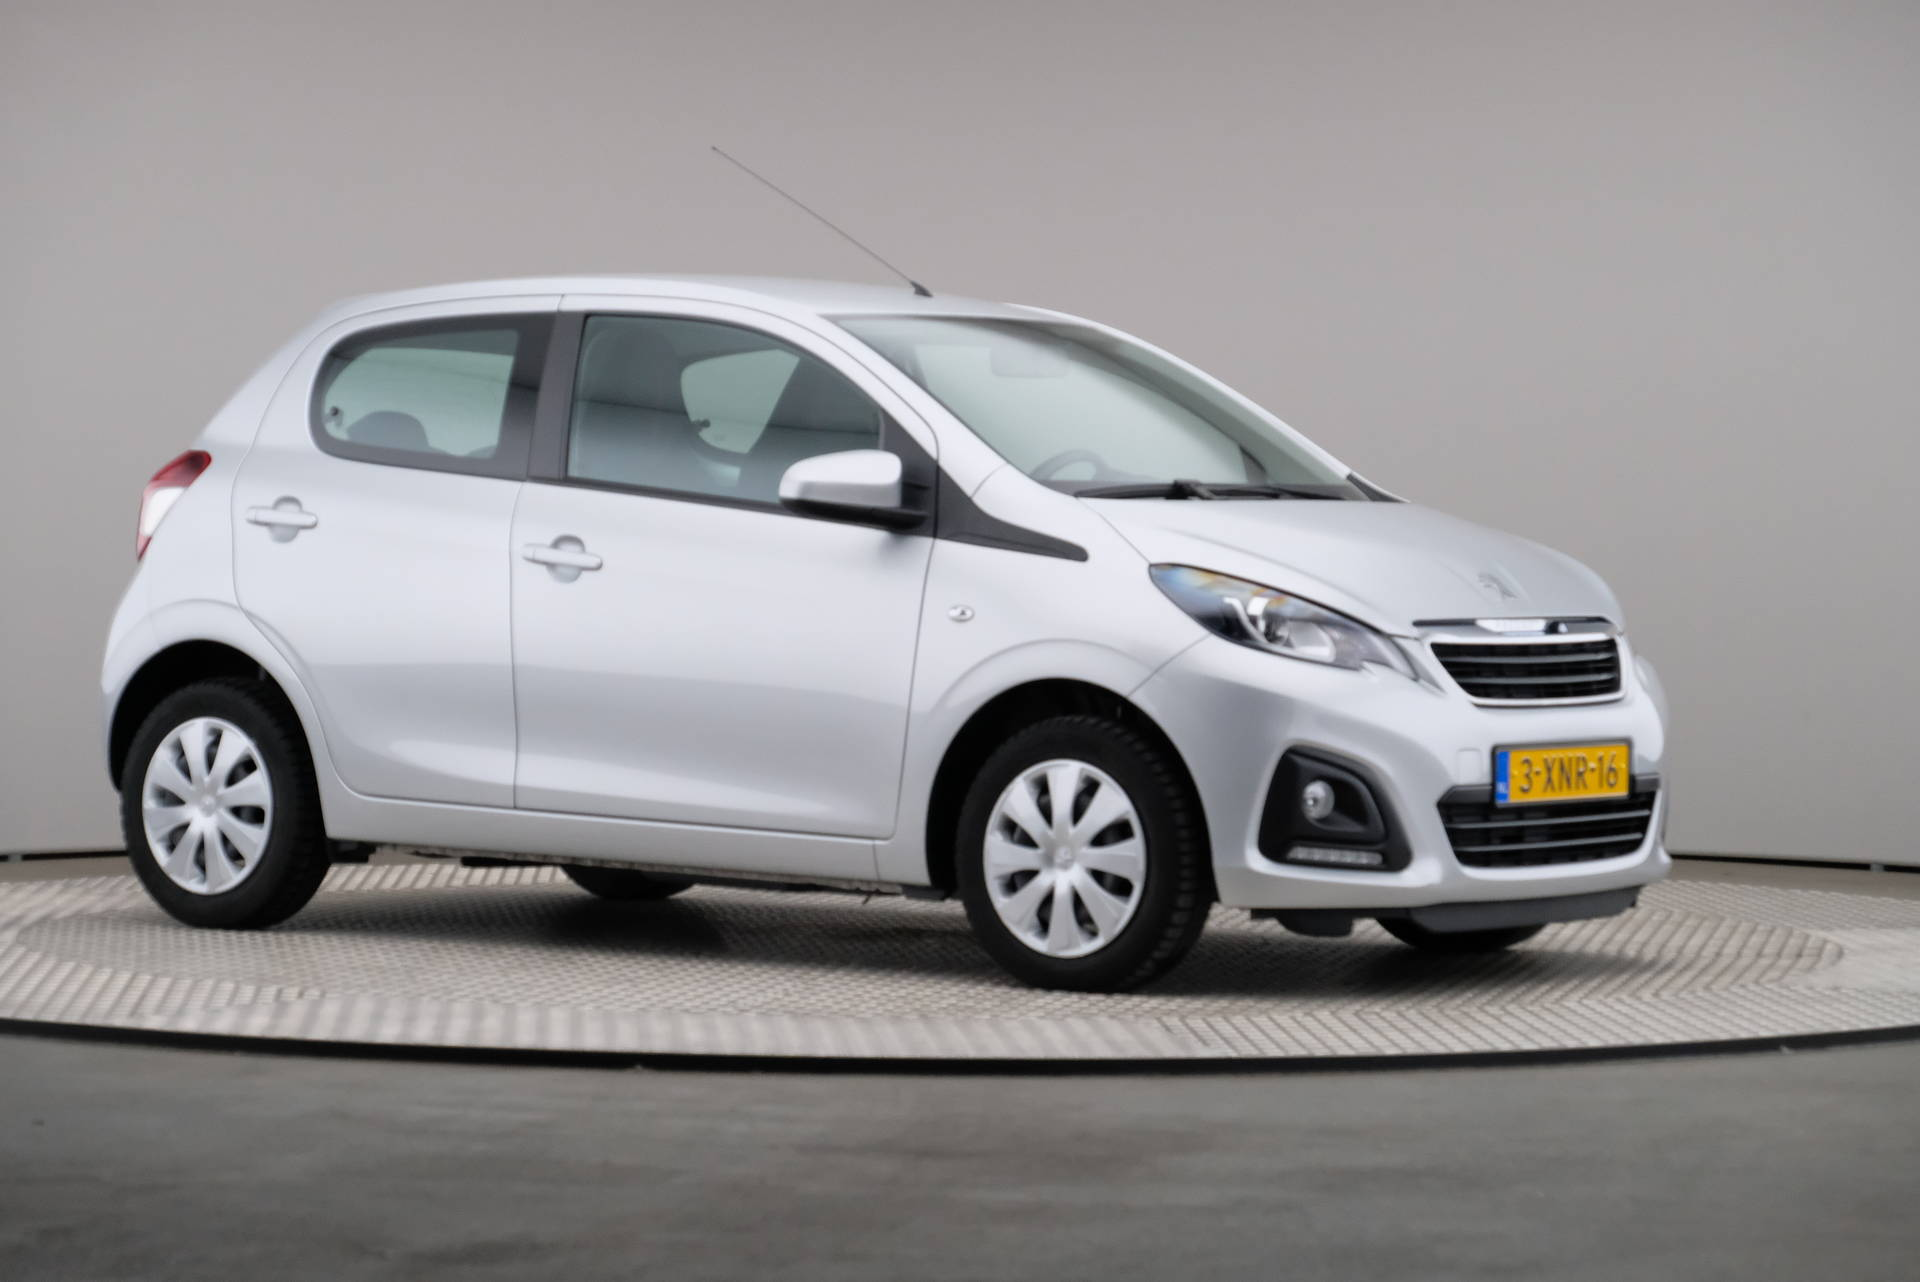 Peugeot 108 1.0 e-VTi Blue Lease, Airconditioning, 360-image27